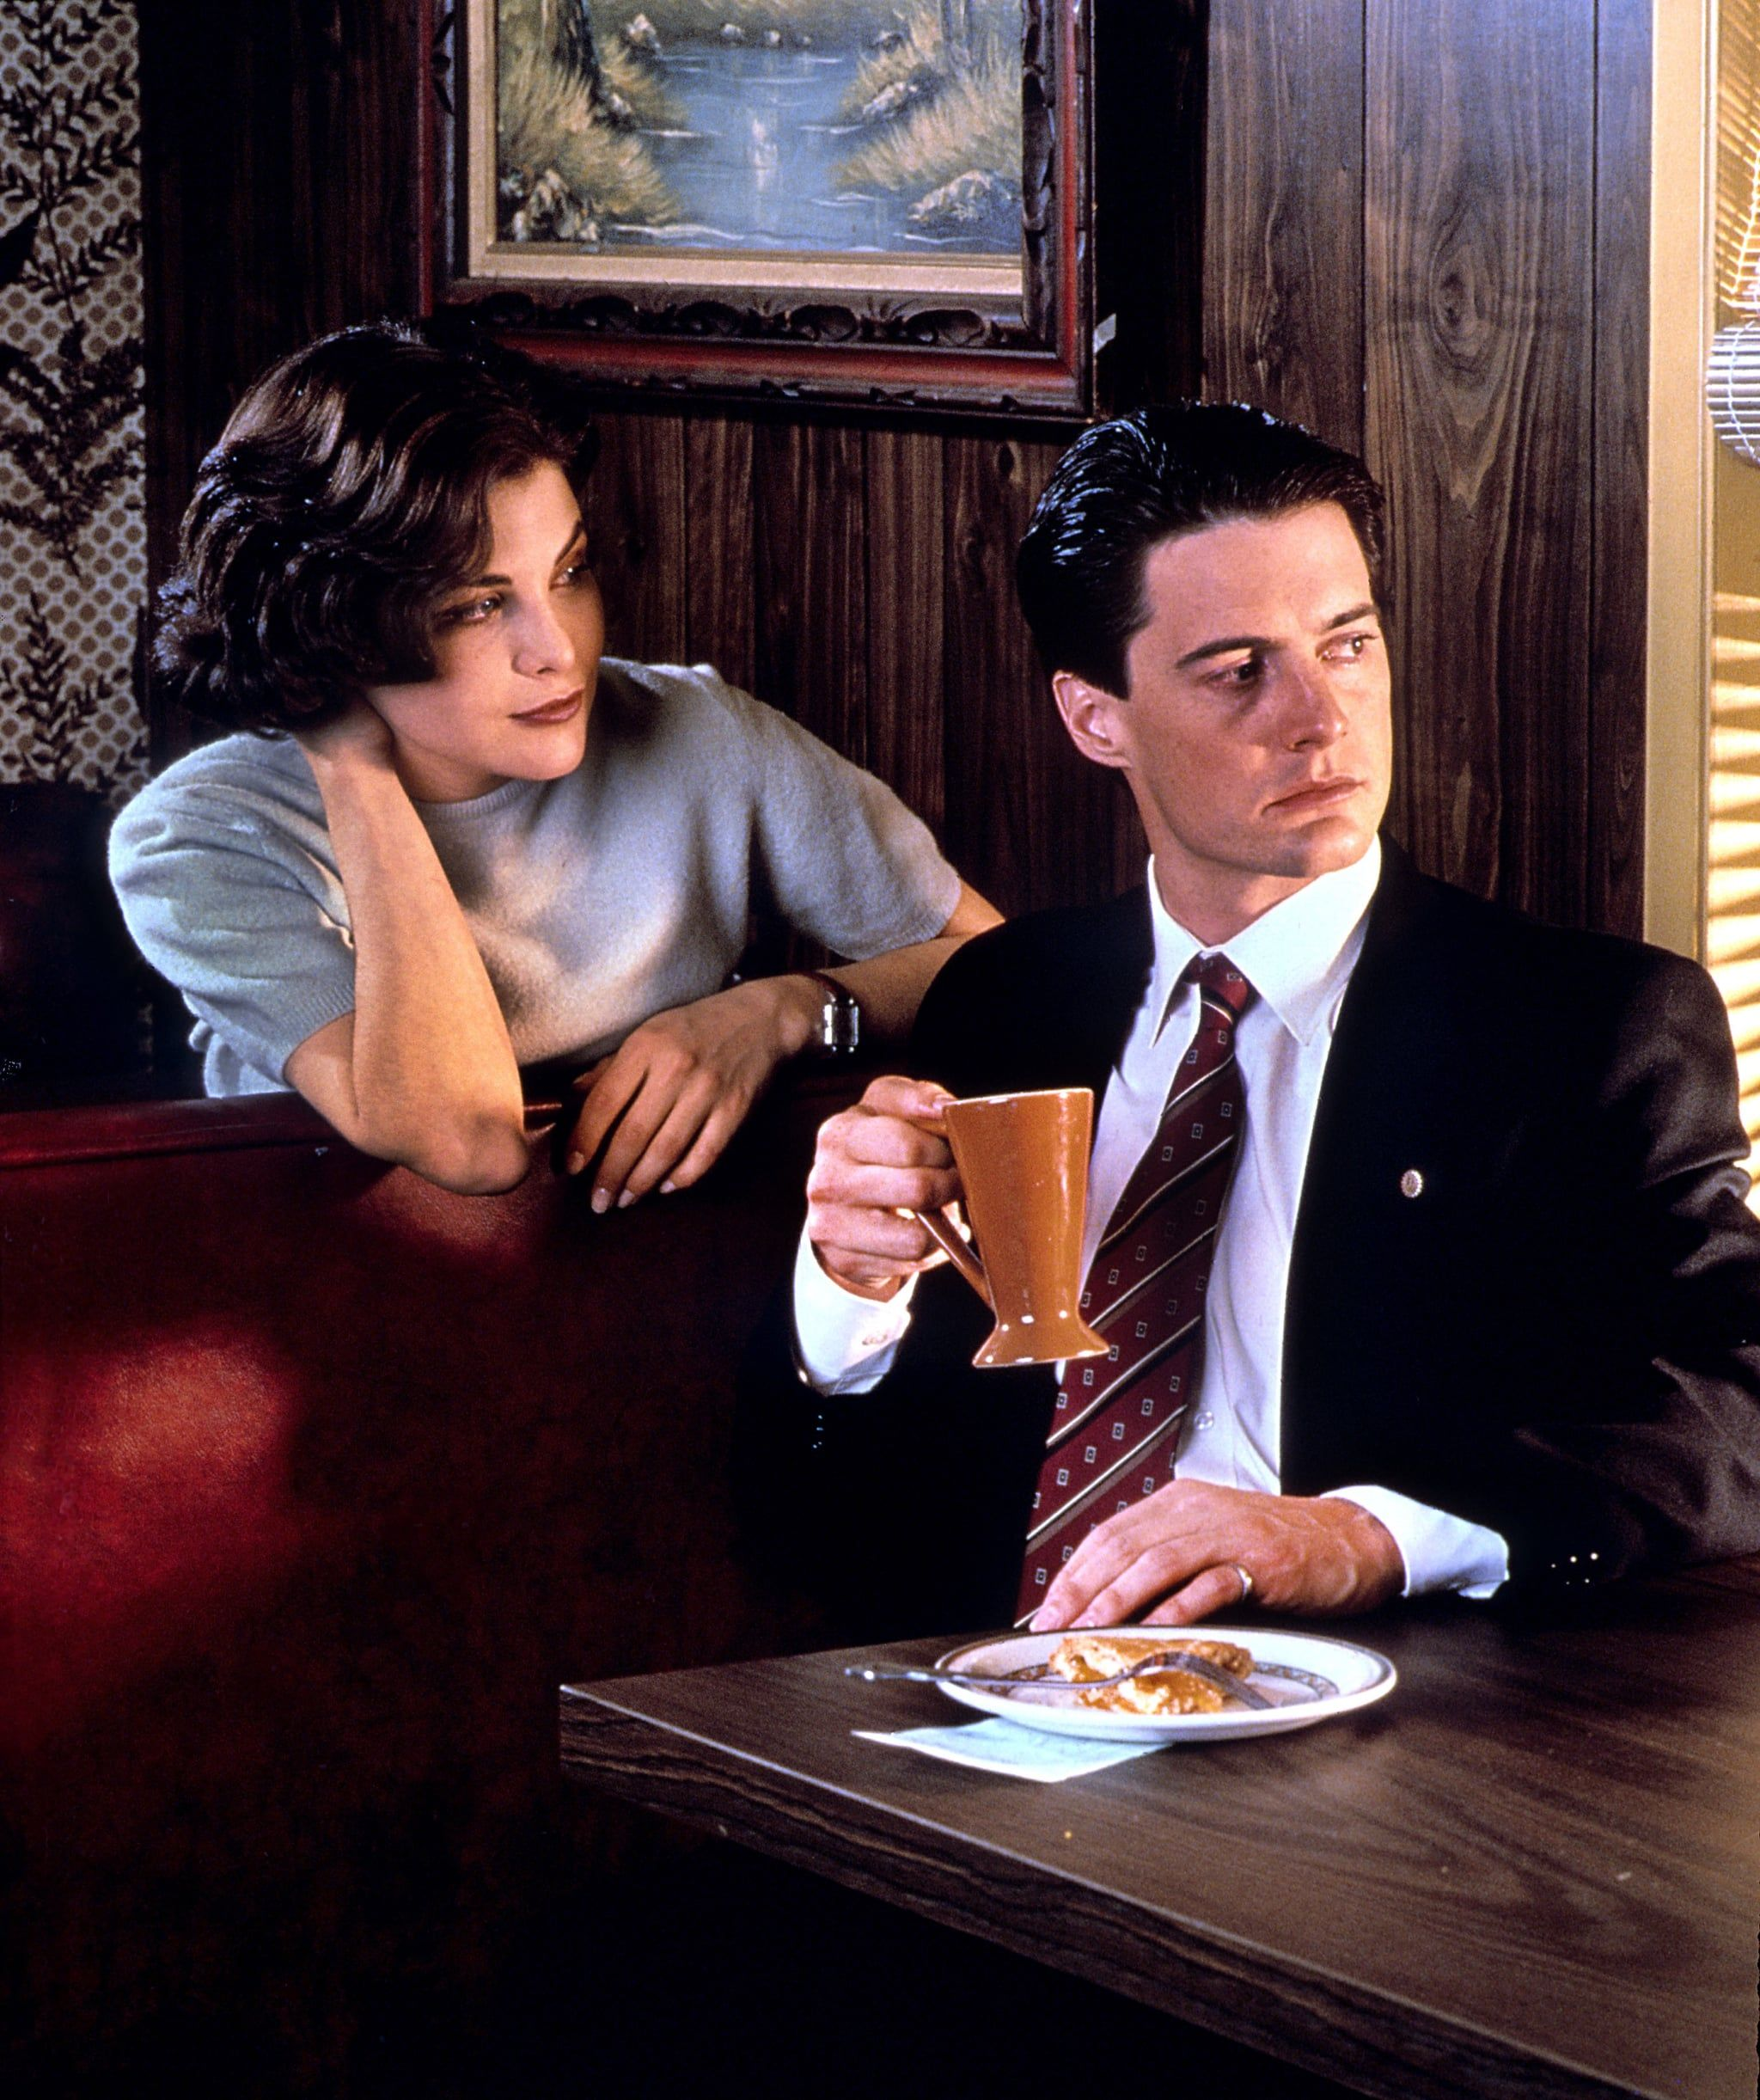 """31 May 2018 — Sherilyn Fenn as 'Audrey Horne' & Kyle MacLachlan as 'Special Agent Dale Cooper' in  """"Twin Peaks"""" 💠 Nearly 25 yrs after it first premiered on ABC, """"Twin Peaks"""" — the brainchild of David Lynch & Mark Frost — continues to exert an inescapable gravitational pull on the imaginations of viewers & on the tv landscape as a whole. Watch it now."""